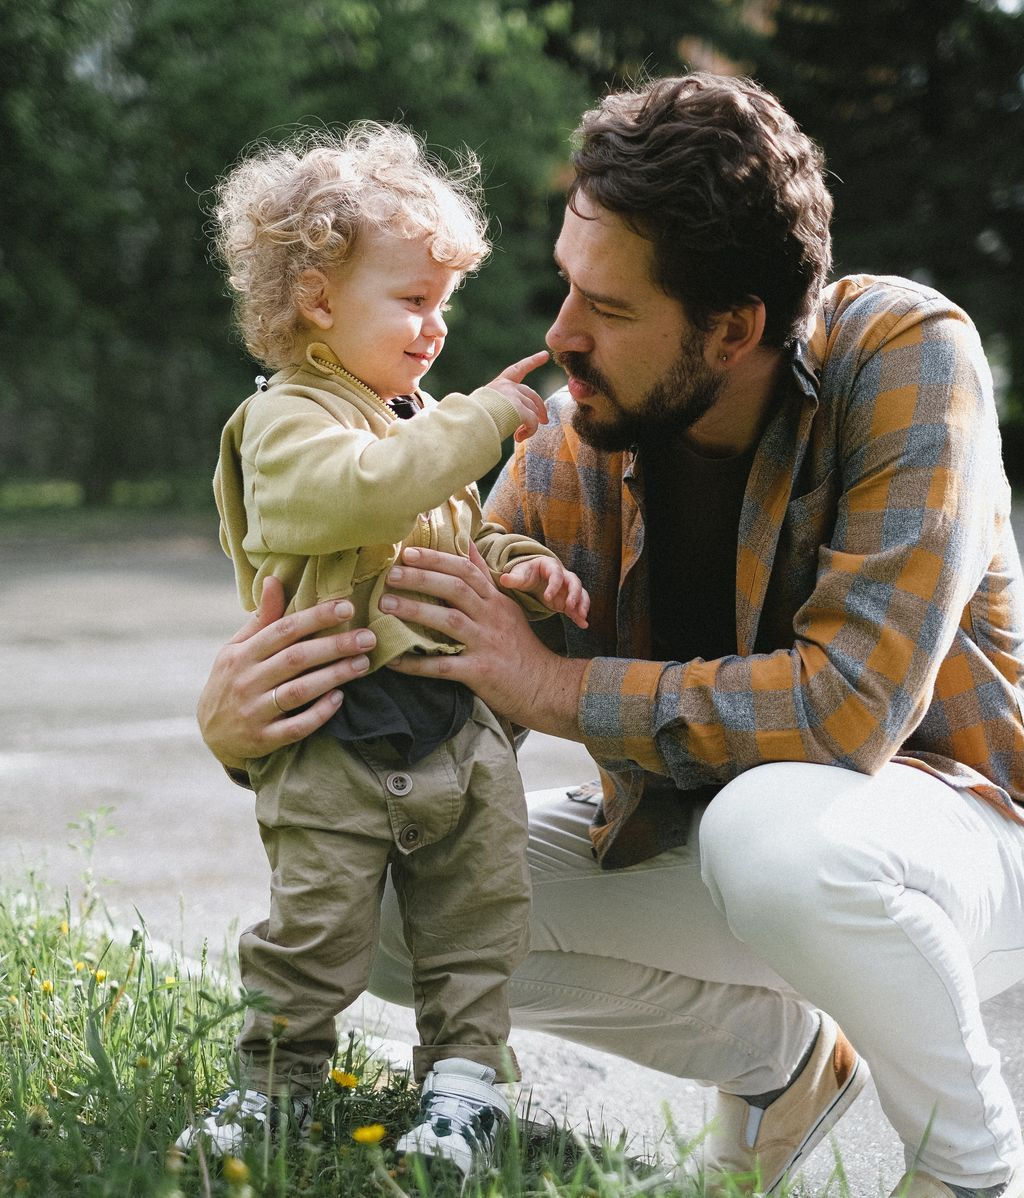 father-and-son-outside-4586685